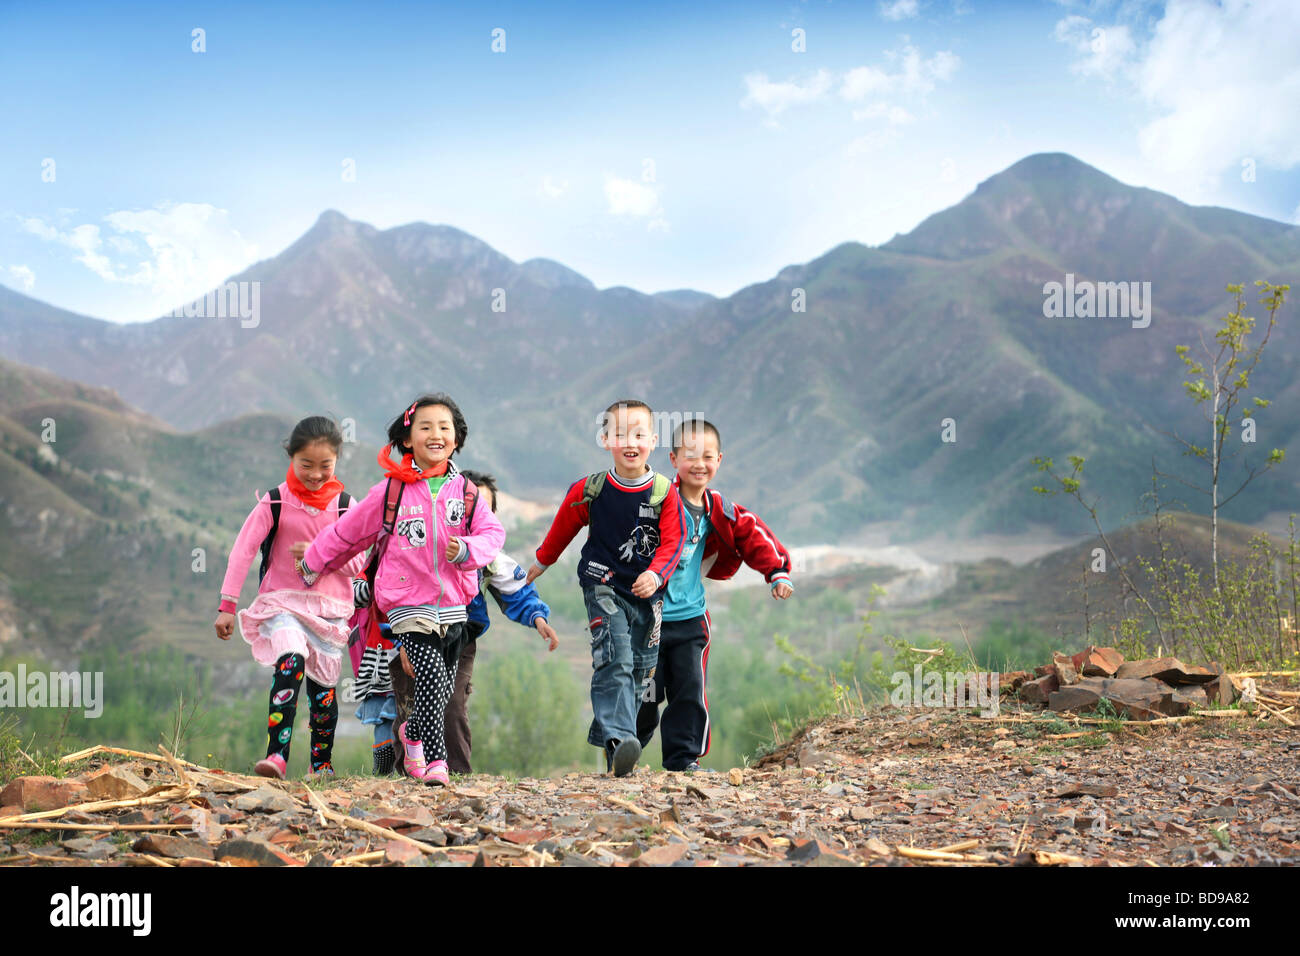 Elementary students in rural area,China - Stock Image